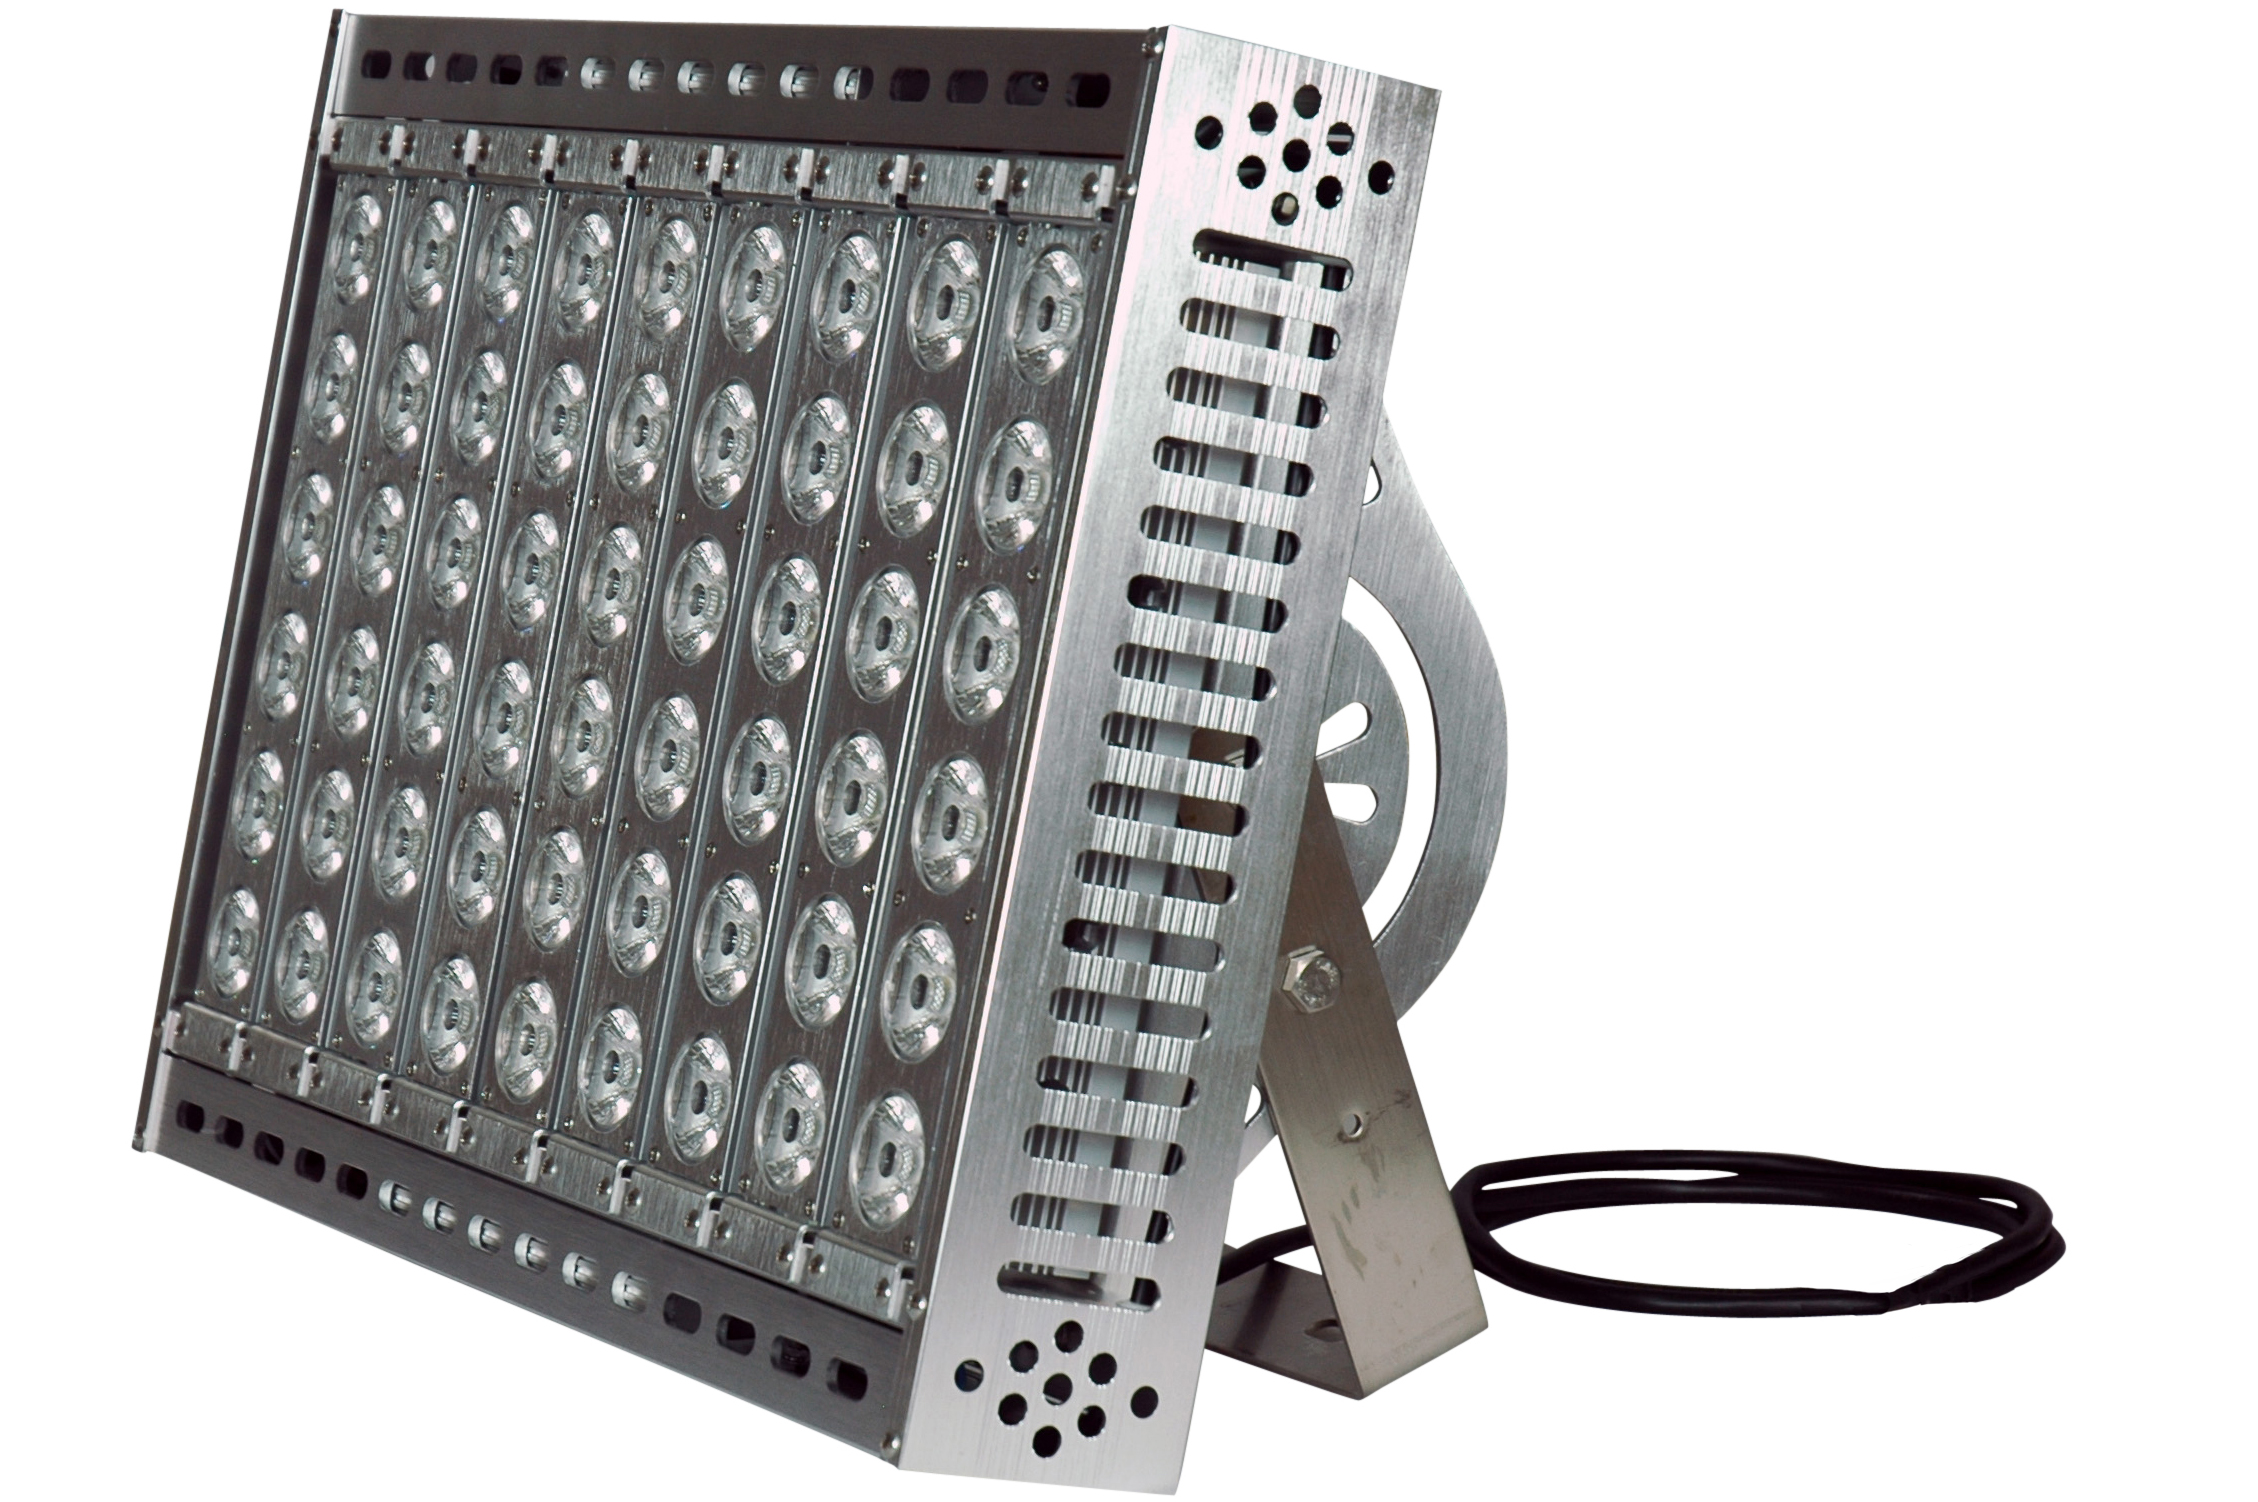 Larson electronics releases a 400 watt high bay led light with 400 watt high bay led light fixture that produces 52000 lumens of lighthigh bay led light fixture with stainless steel mounting brackets arubaitofo Gallery